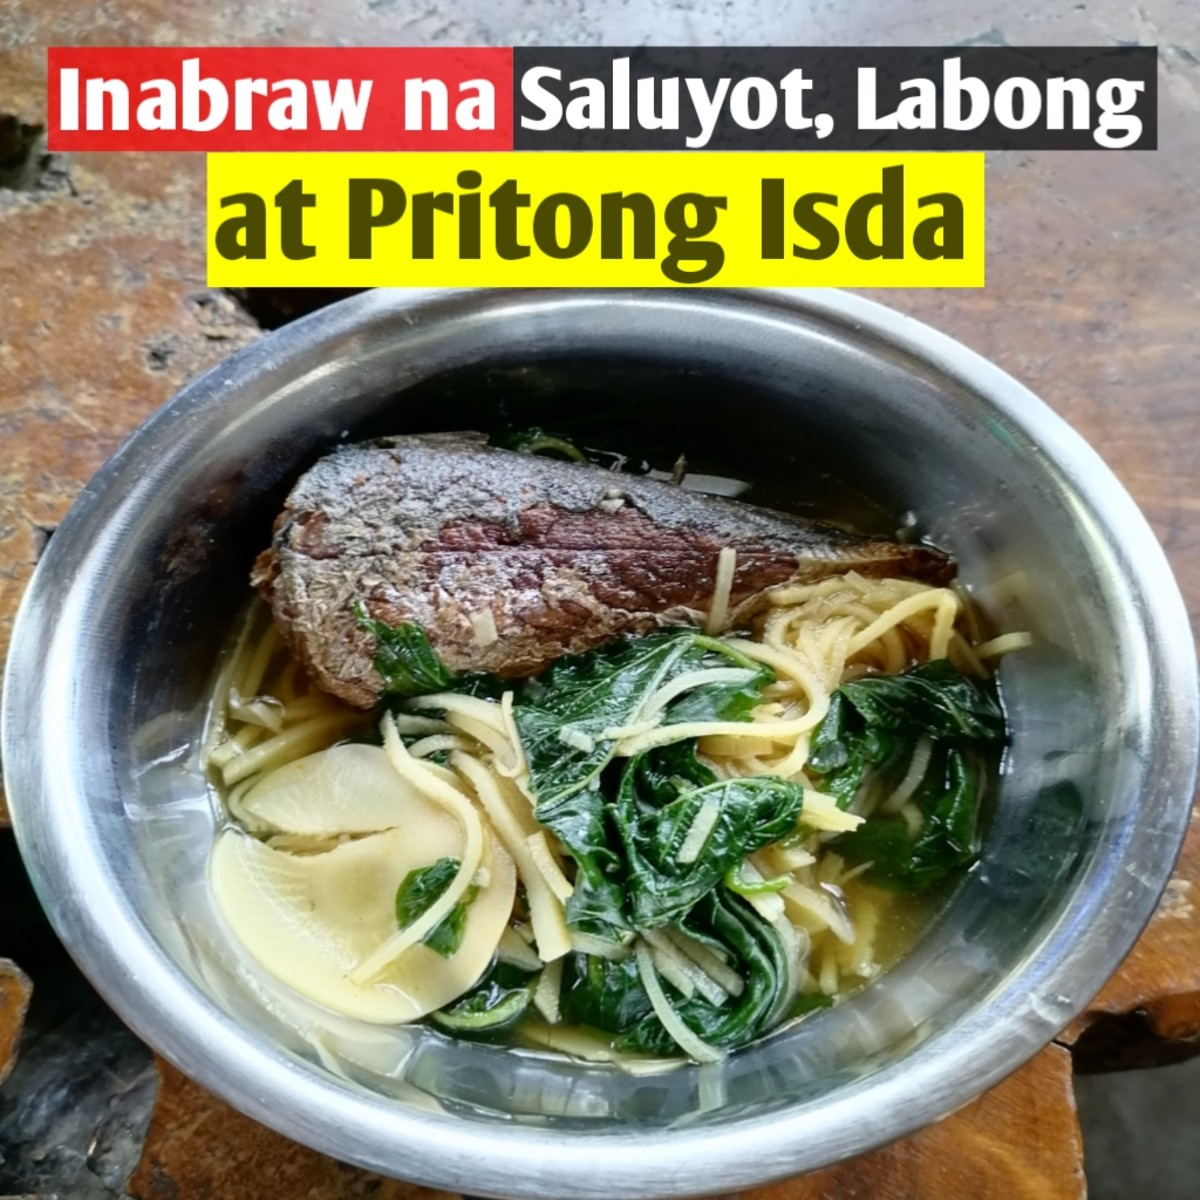 How to Cook Inabraw na Saluyot, Labong at Pritong Isda